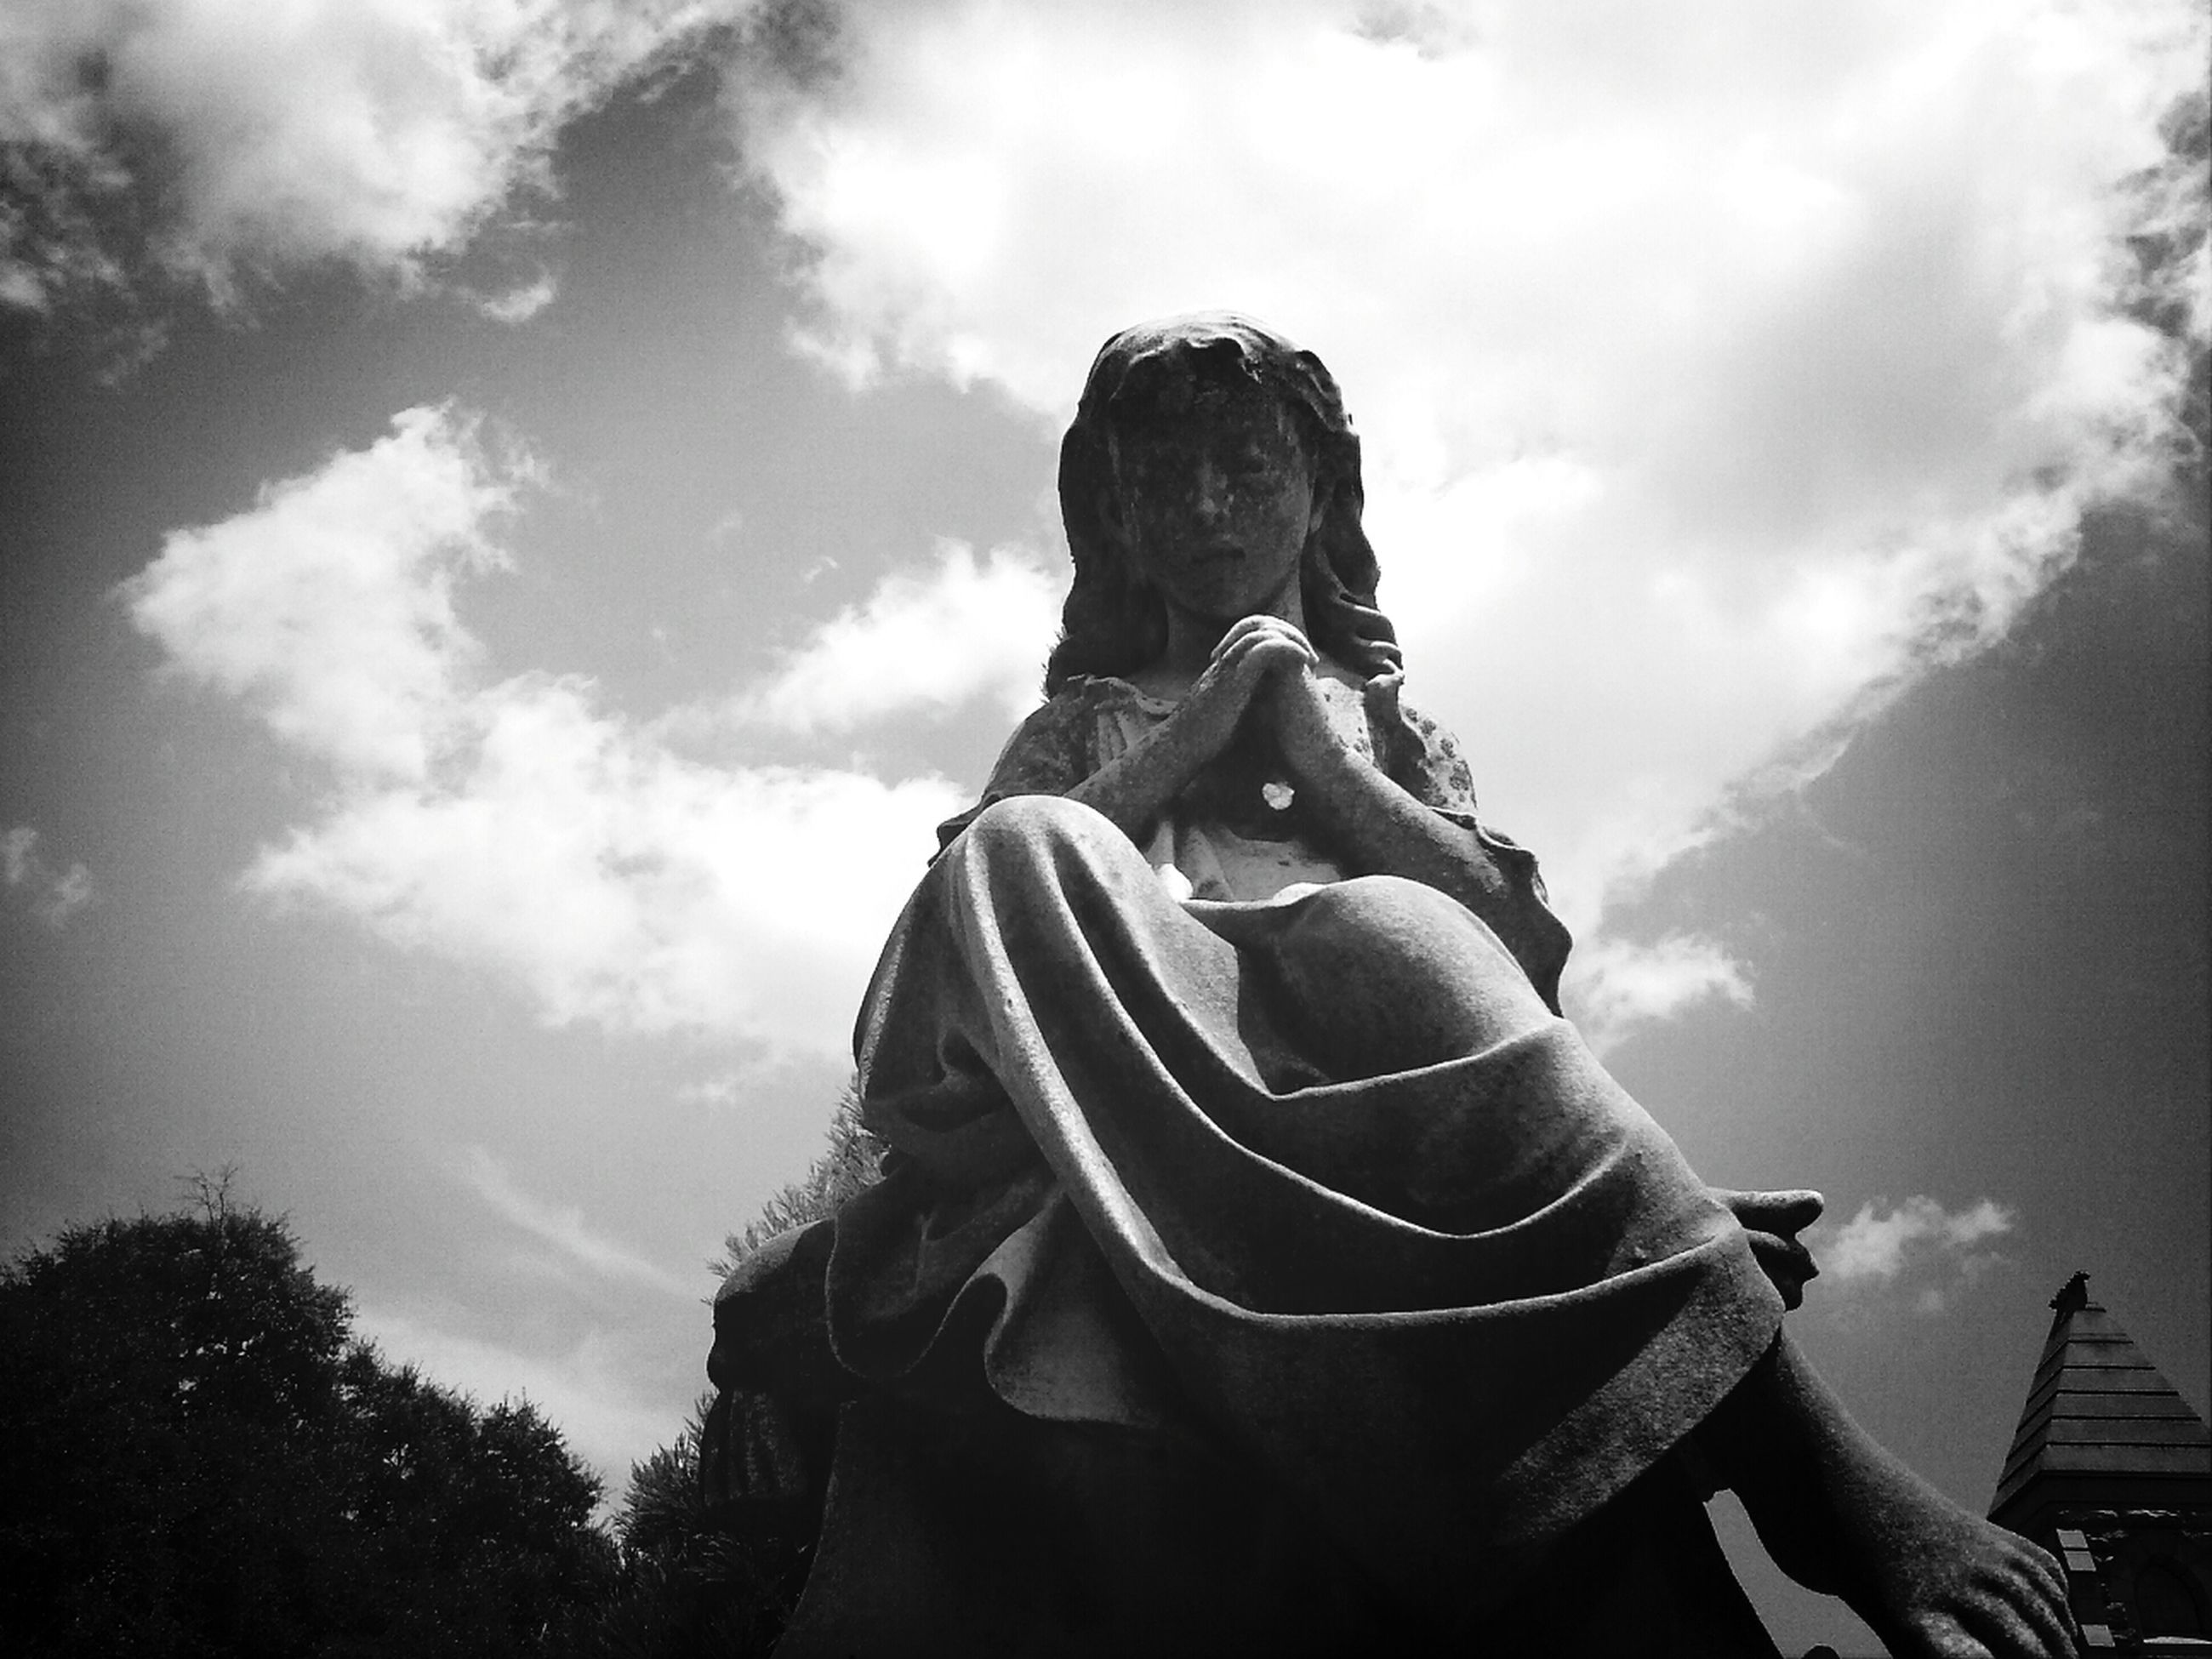 sky, low angle view, statue, sculpture, human representation, art, art and craft, creativity, cloud - sky, cloud, religion, spirituality, cloudy, outdoors, lifestyles, built structure